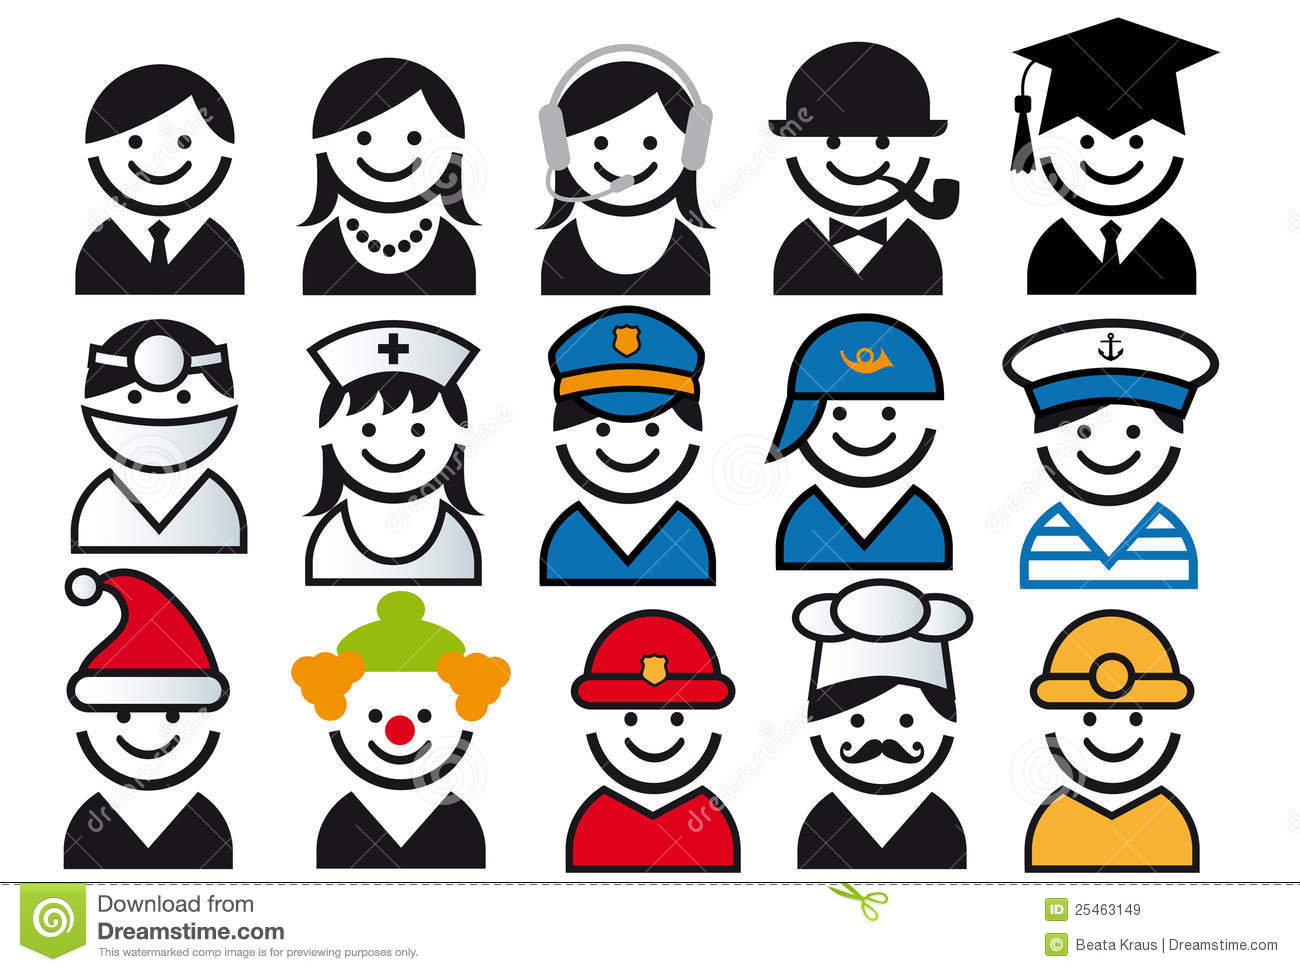 Royalty free stock images: profession vector people icon set